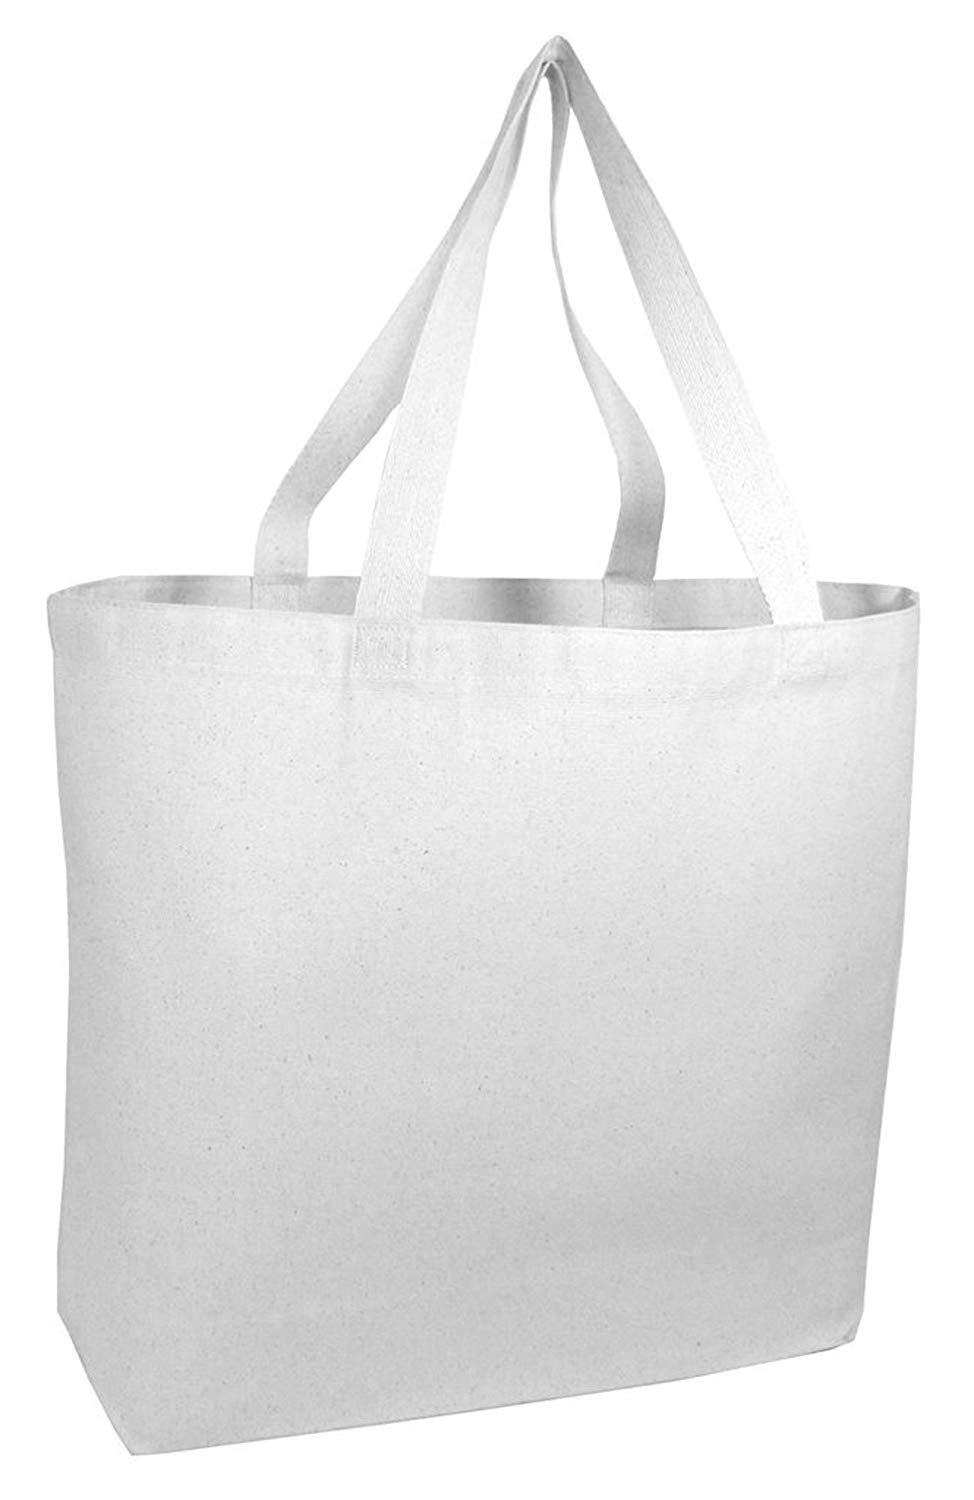 cbceb811a6b887 Get Quotations · 12 PACK Large Heavy Canvas Beach Tote Bag Boat Bag - Canvas  Deluxe Tote Bags BULK